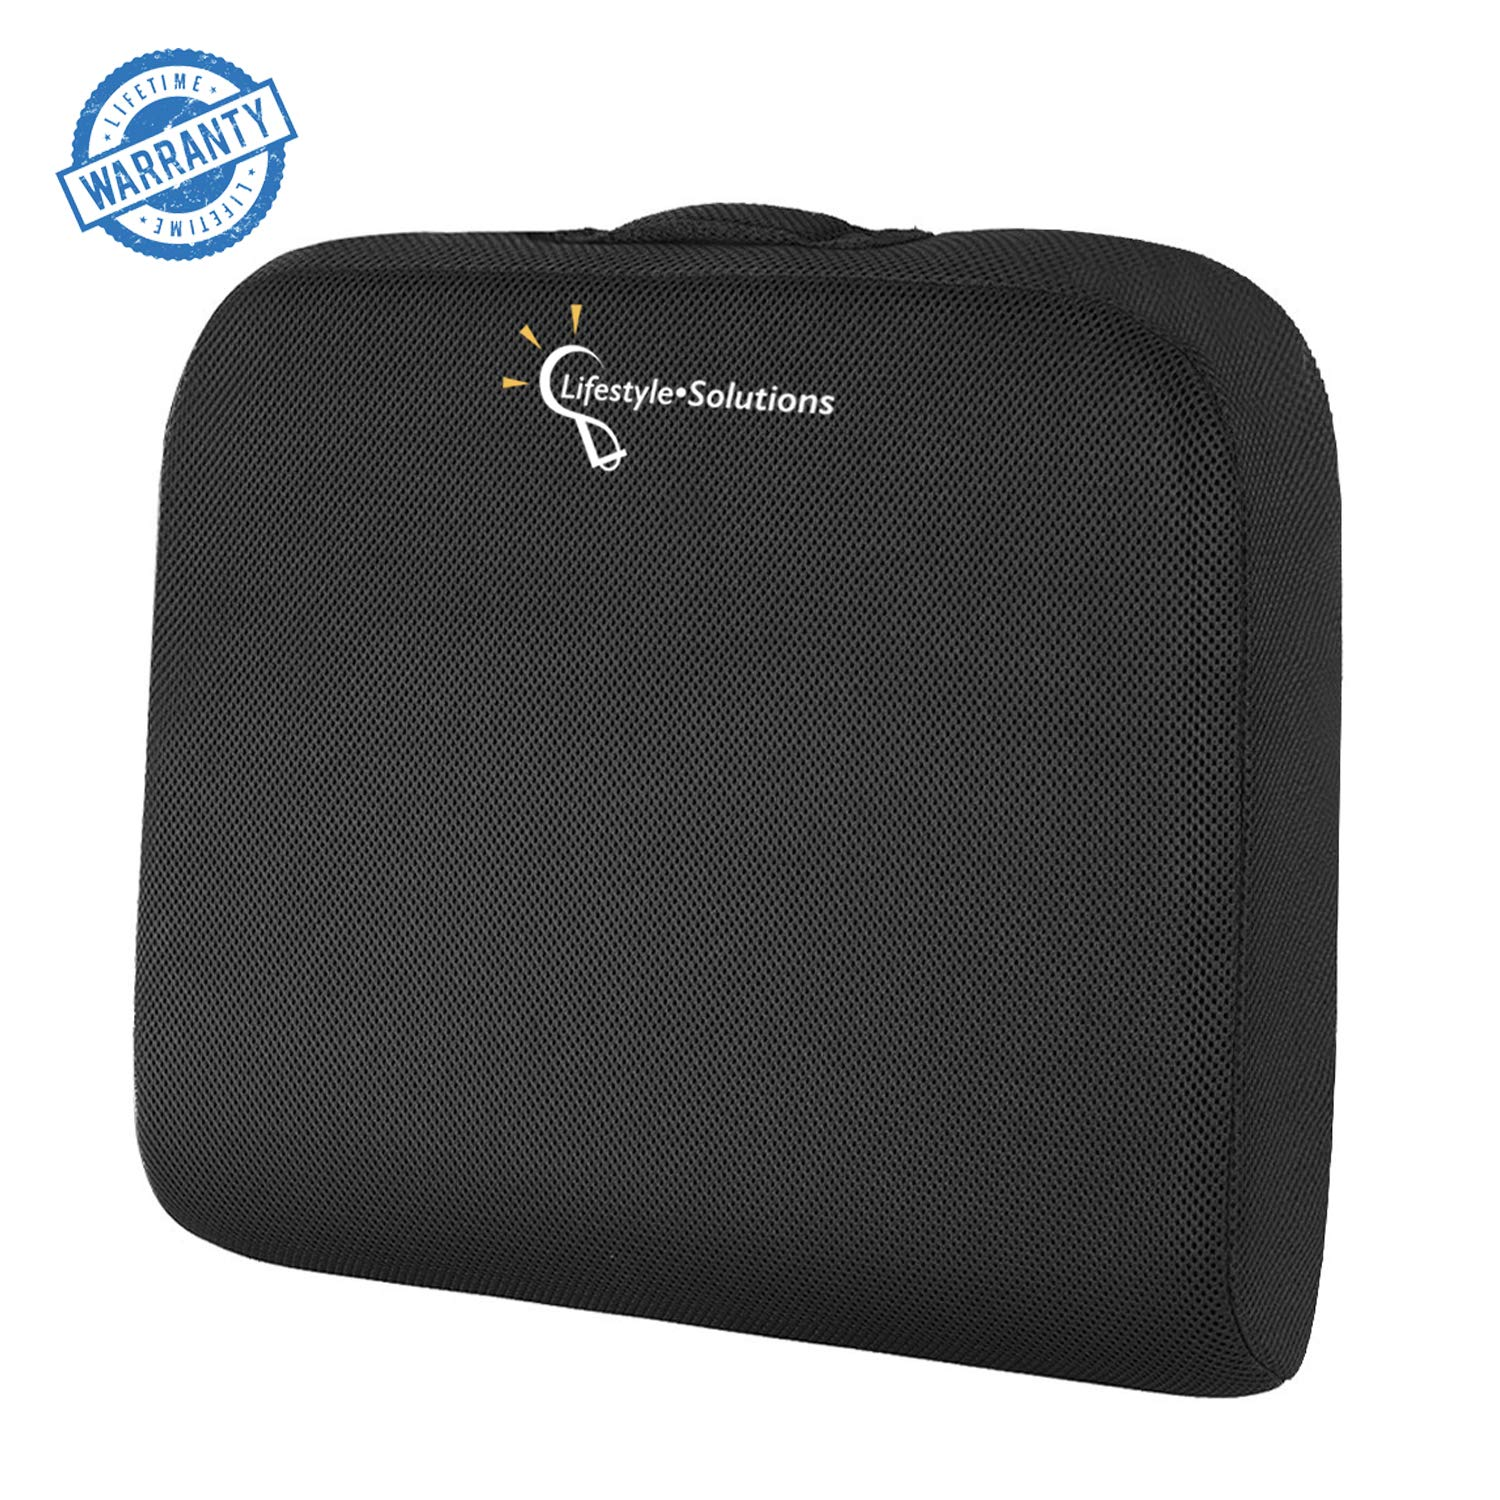 Large Seat Cushion with Carry Handle and Anti Slip Bottom, Memory Foam Seat Cushion for Office Chair , Wheelchairs, Truck Drivers, Gives Relief from Back Pain, Exclusive Carrying Bag